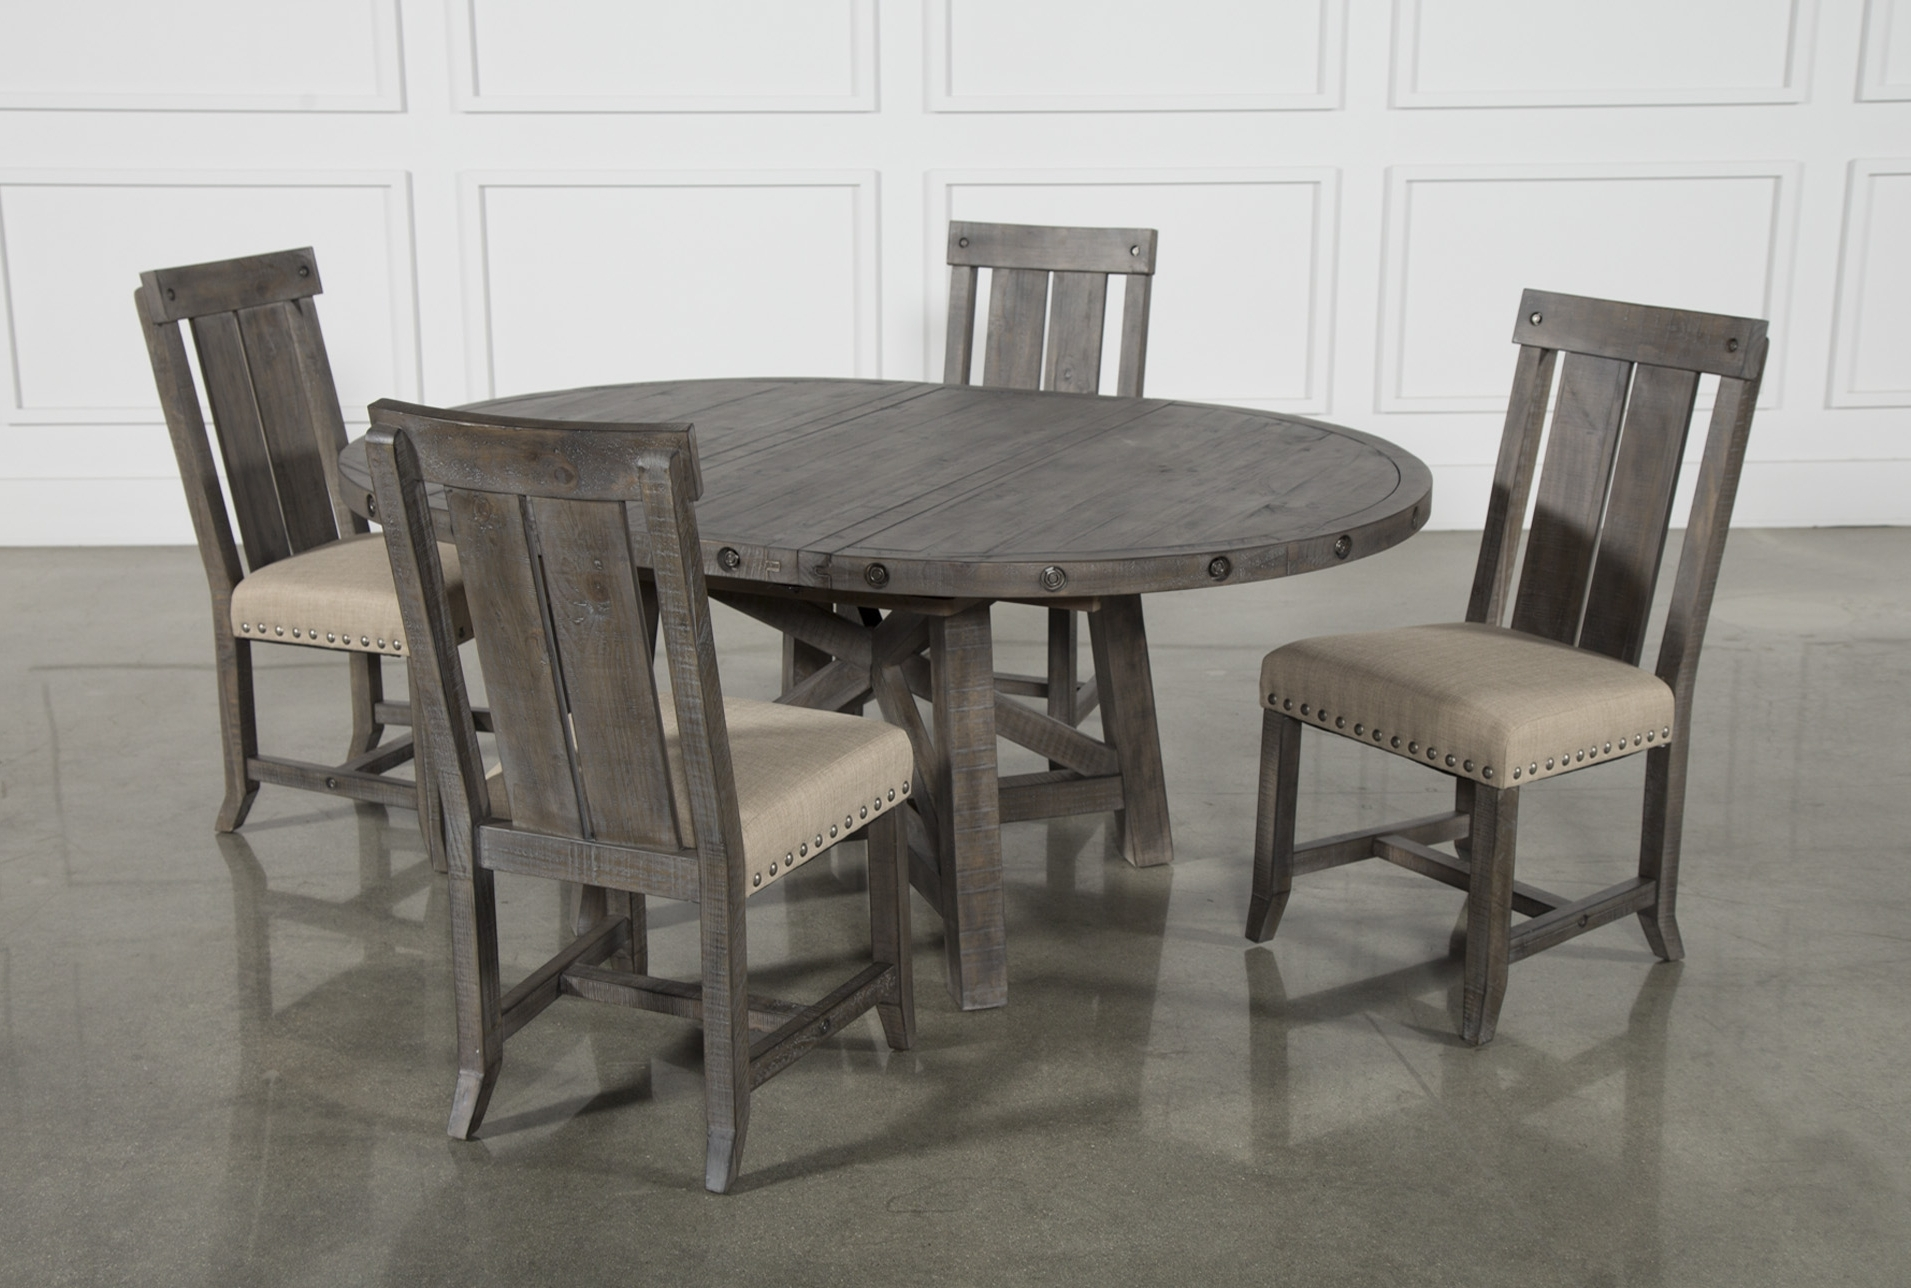 Jaxon 5 Piece Extension Round Dining Sets With Wood Chairs With Regard To Most Up To Date Jaxon Grey 5 Piece Round Extension Dining Set W/wood Chairs (View 6 of 25)